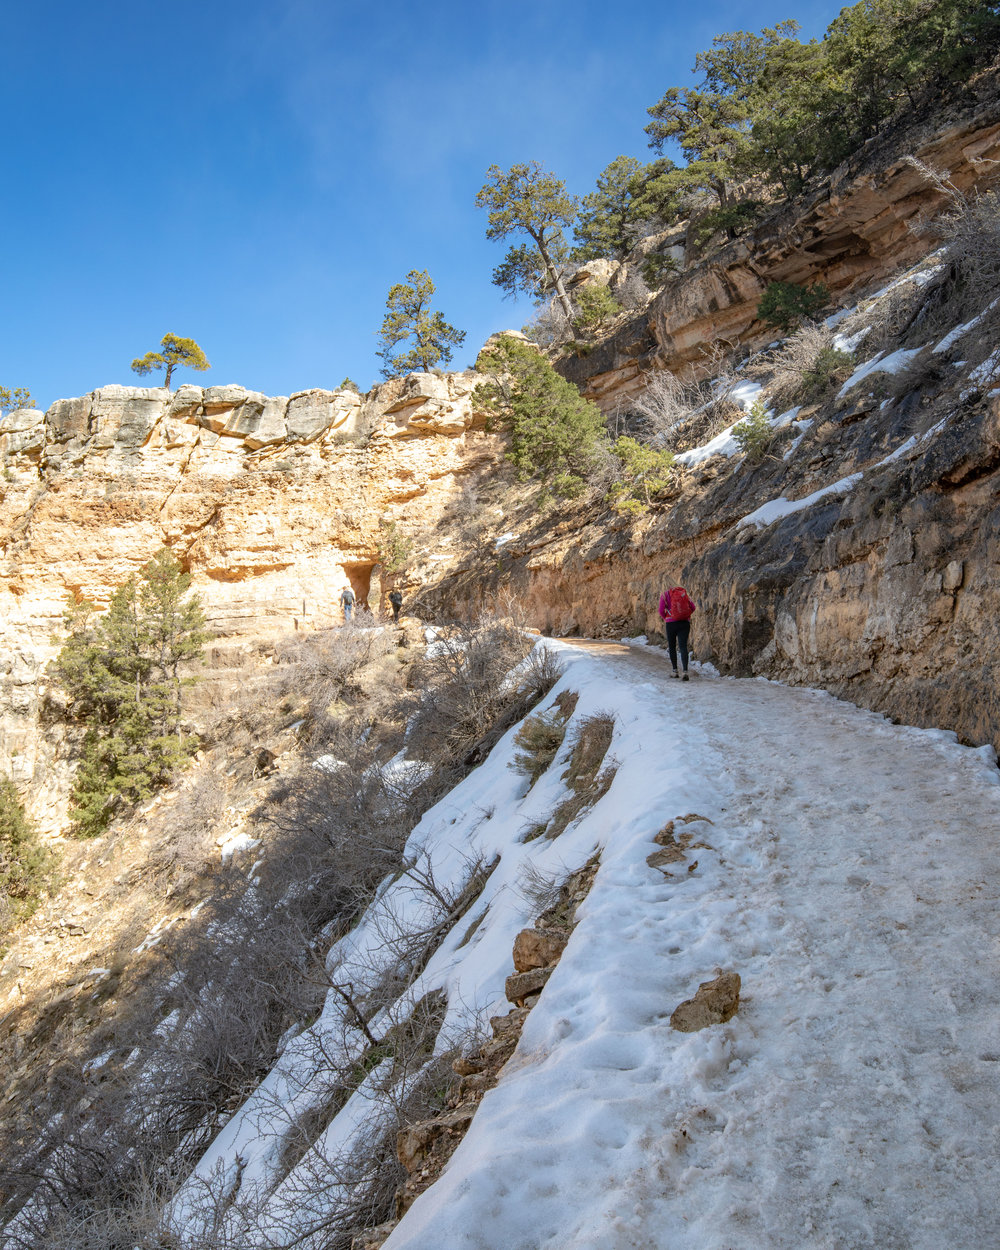 The start of the Bright Angel Trail